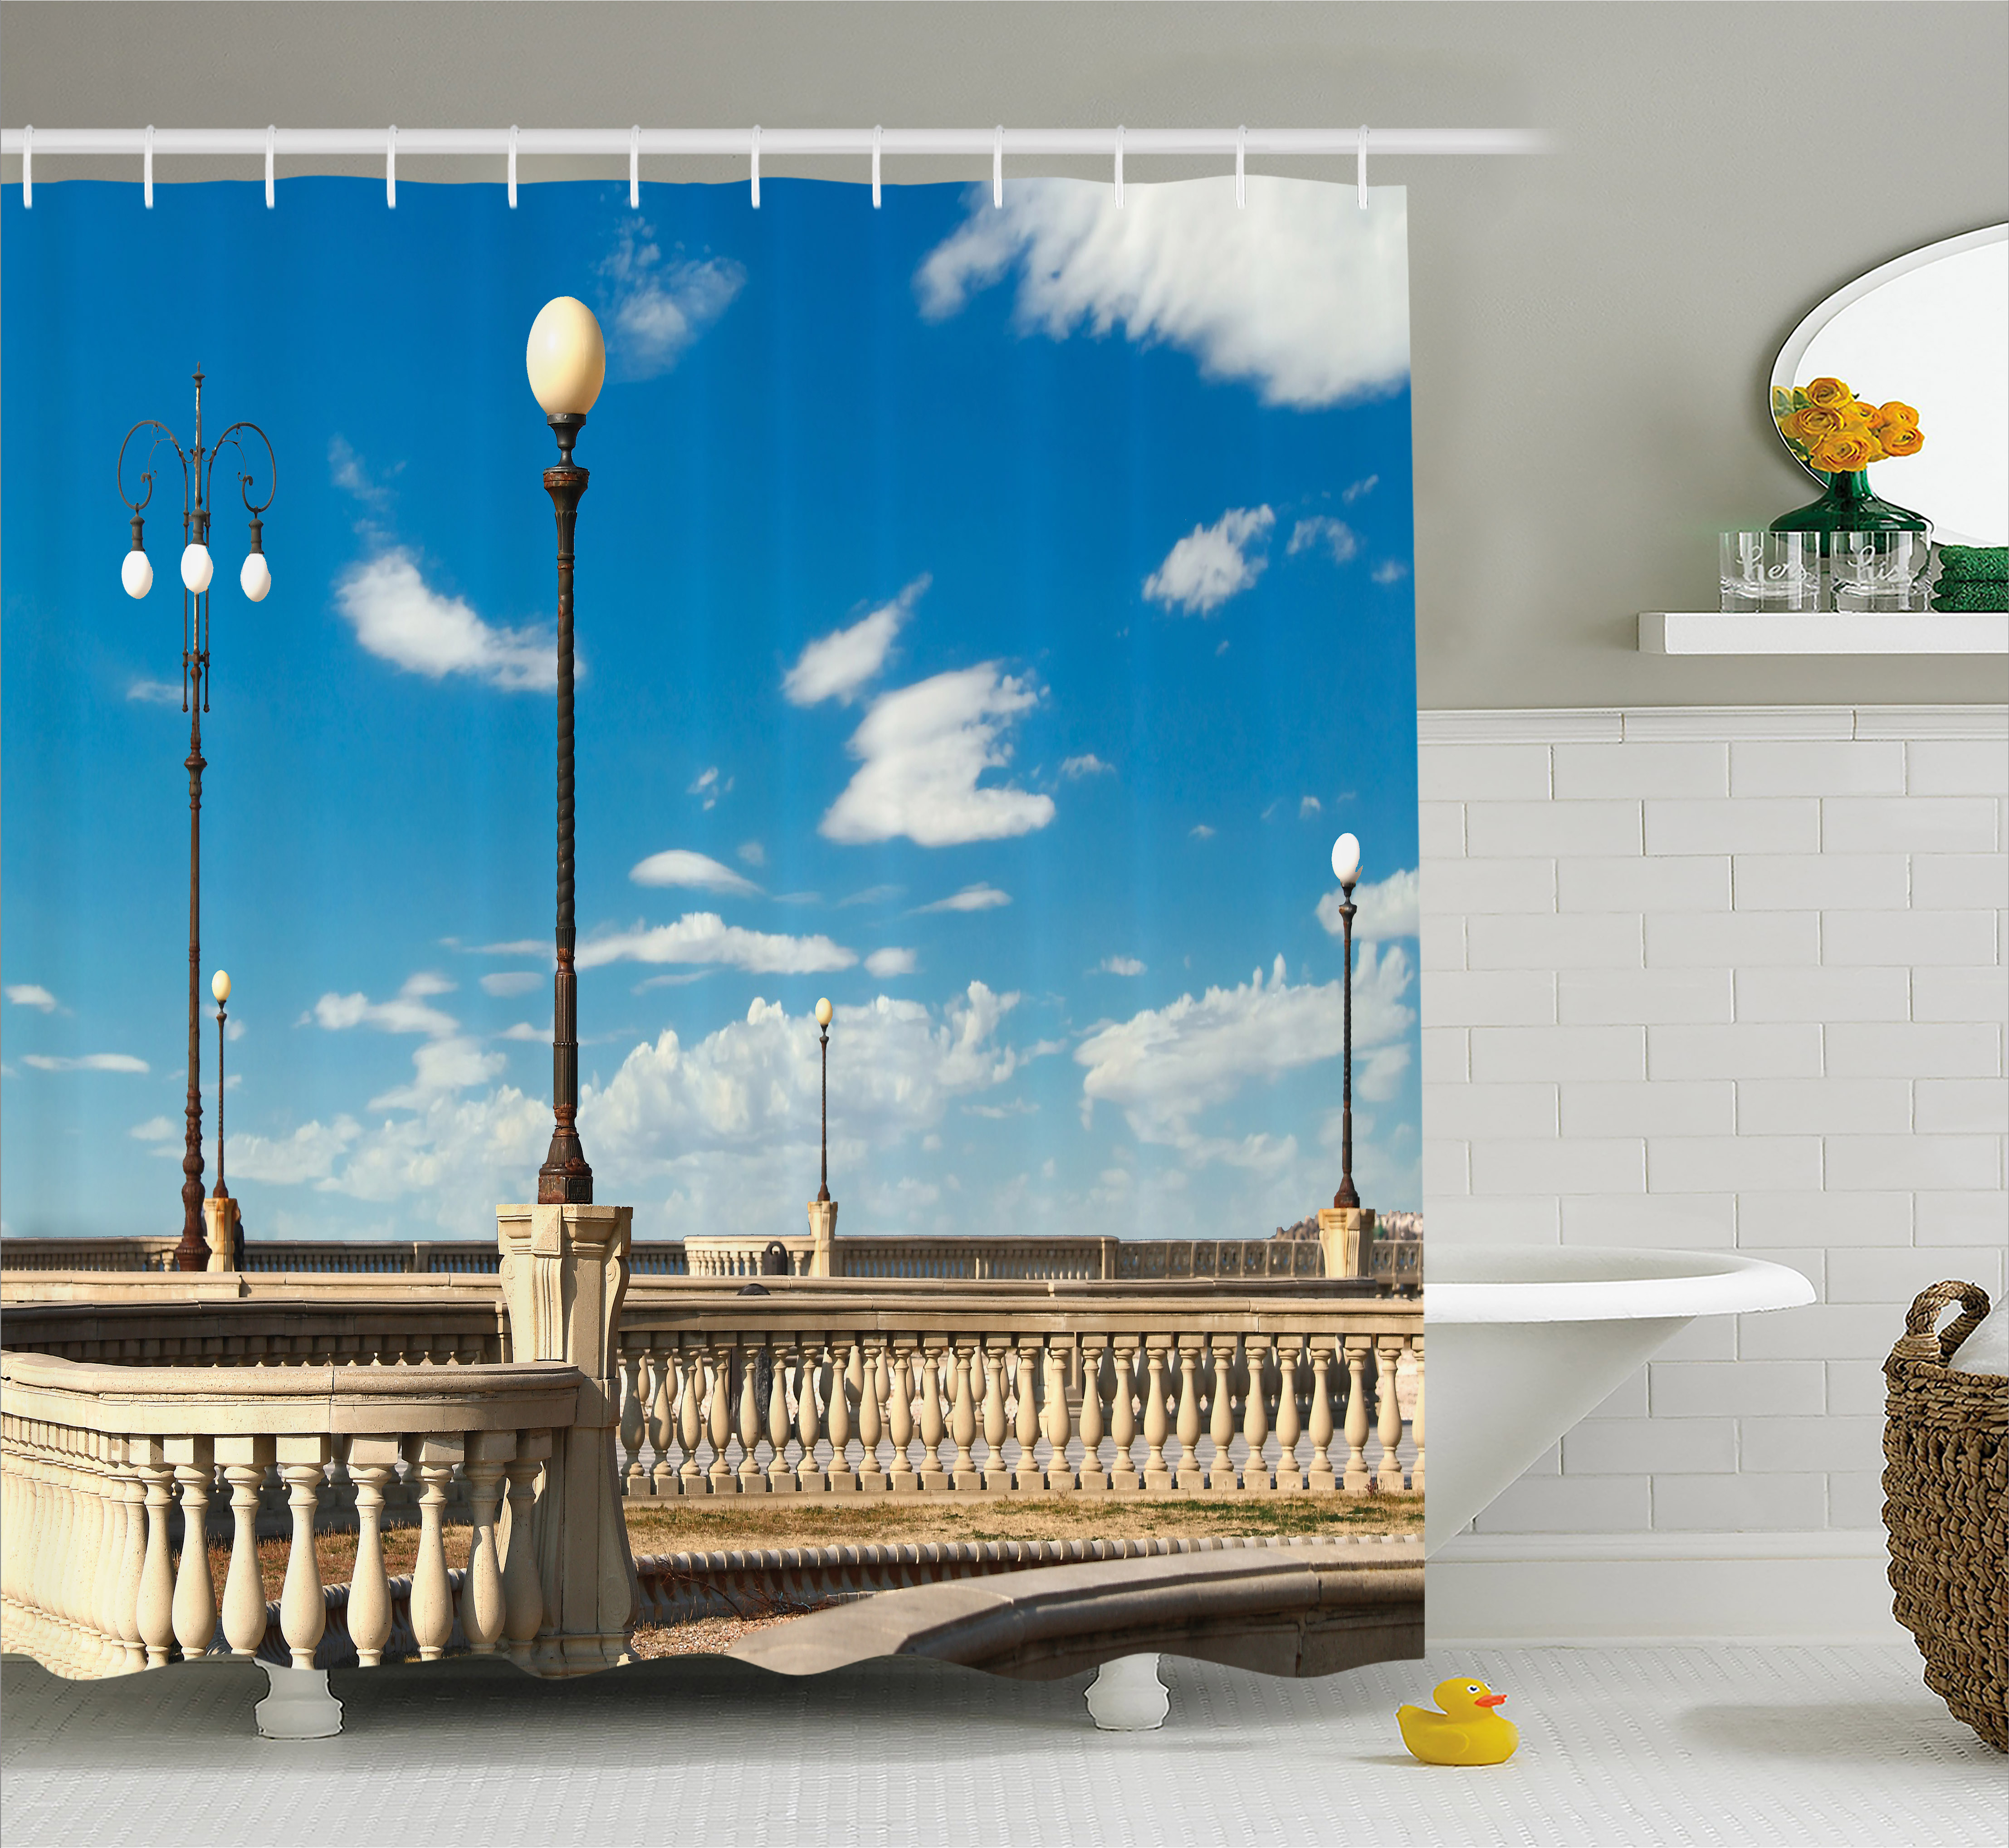 Italian Shower Curtain Mascagni Terrace Street Promenade Of Livorno Tuscany Artwork Print Fabric Bathroom Set With Hooks 69W X 75L Inches Long